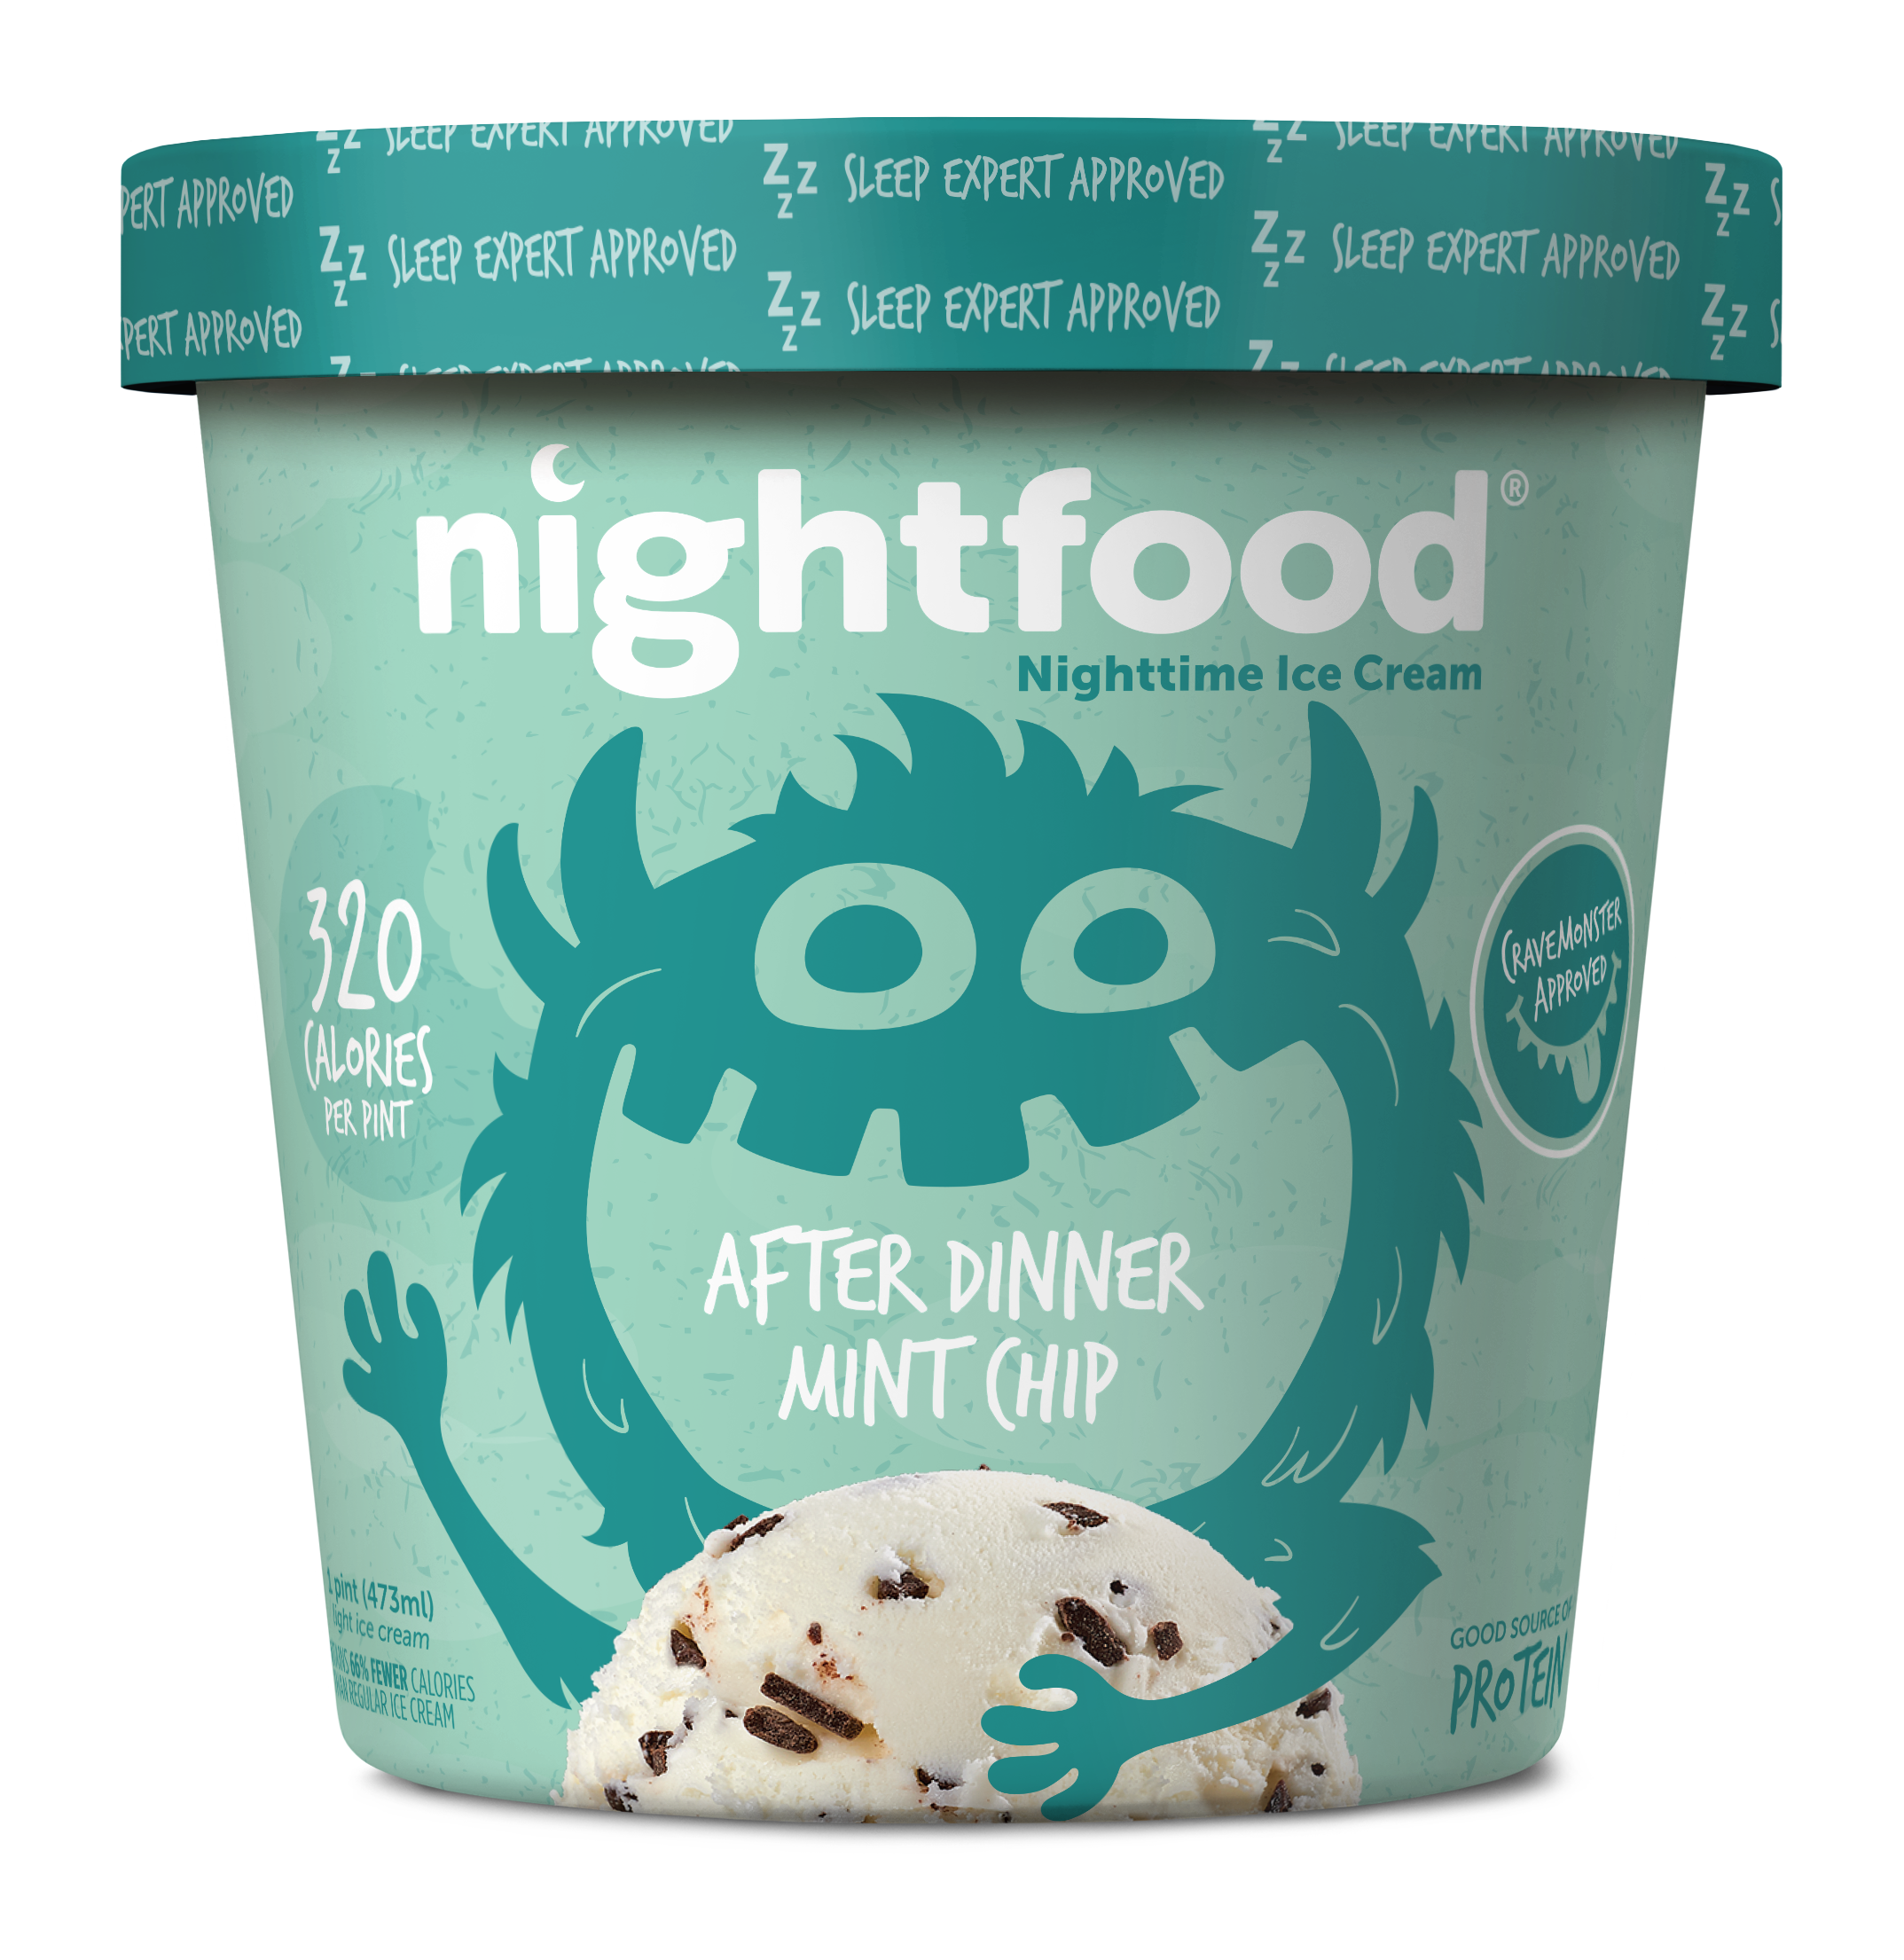 Nightfood Ice Cream - Get a FREE Pint Coupon